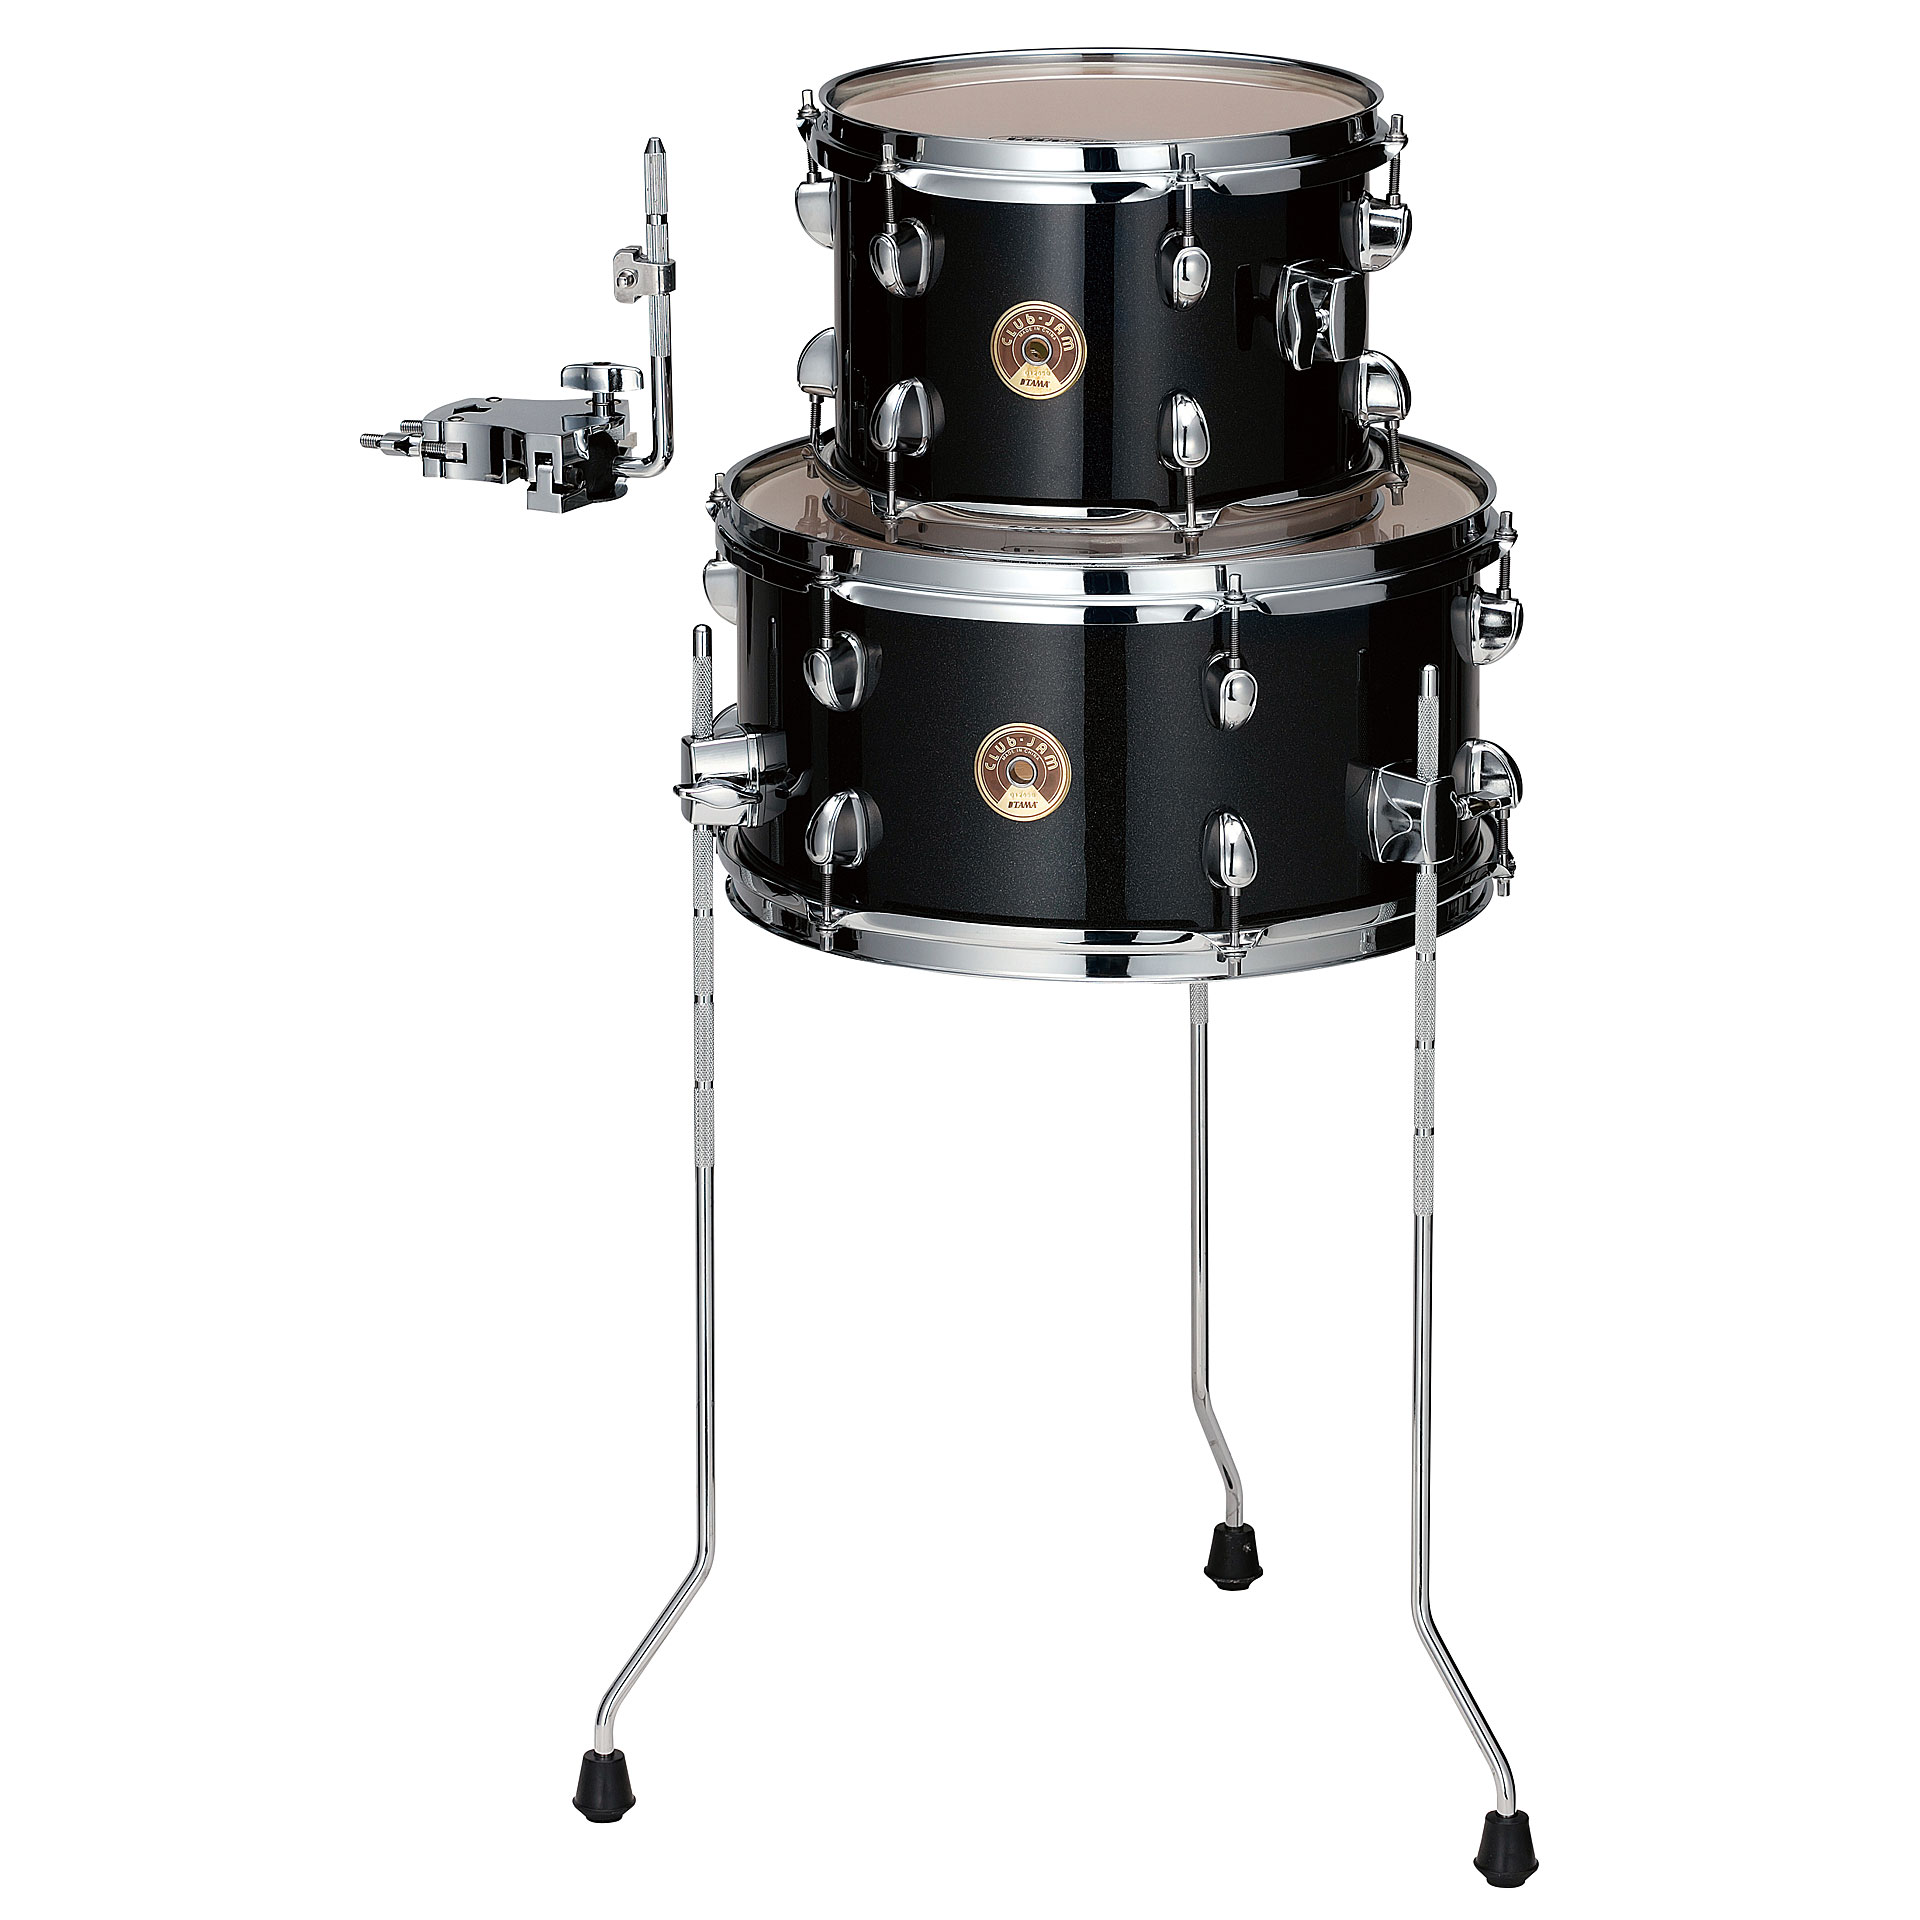 Tama Club Jam Mini 1014 Charcoal Mist Tom Tom Add On ударная